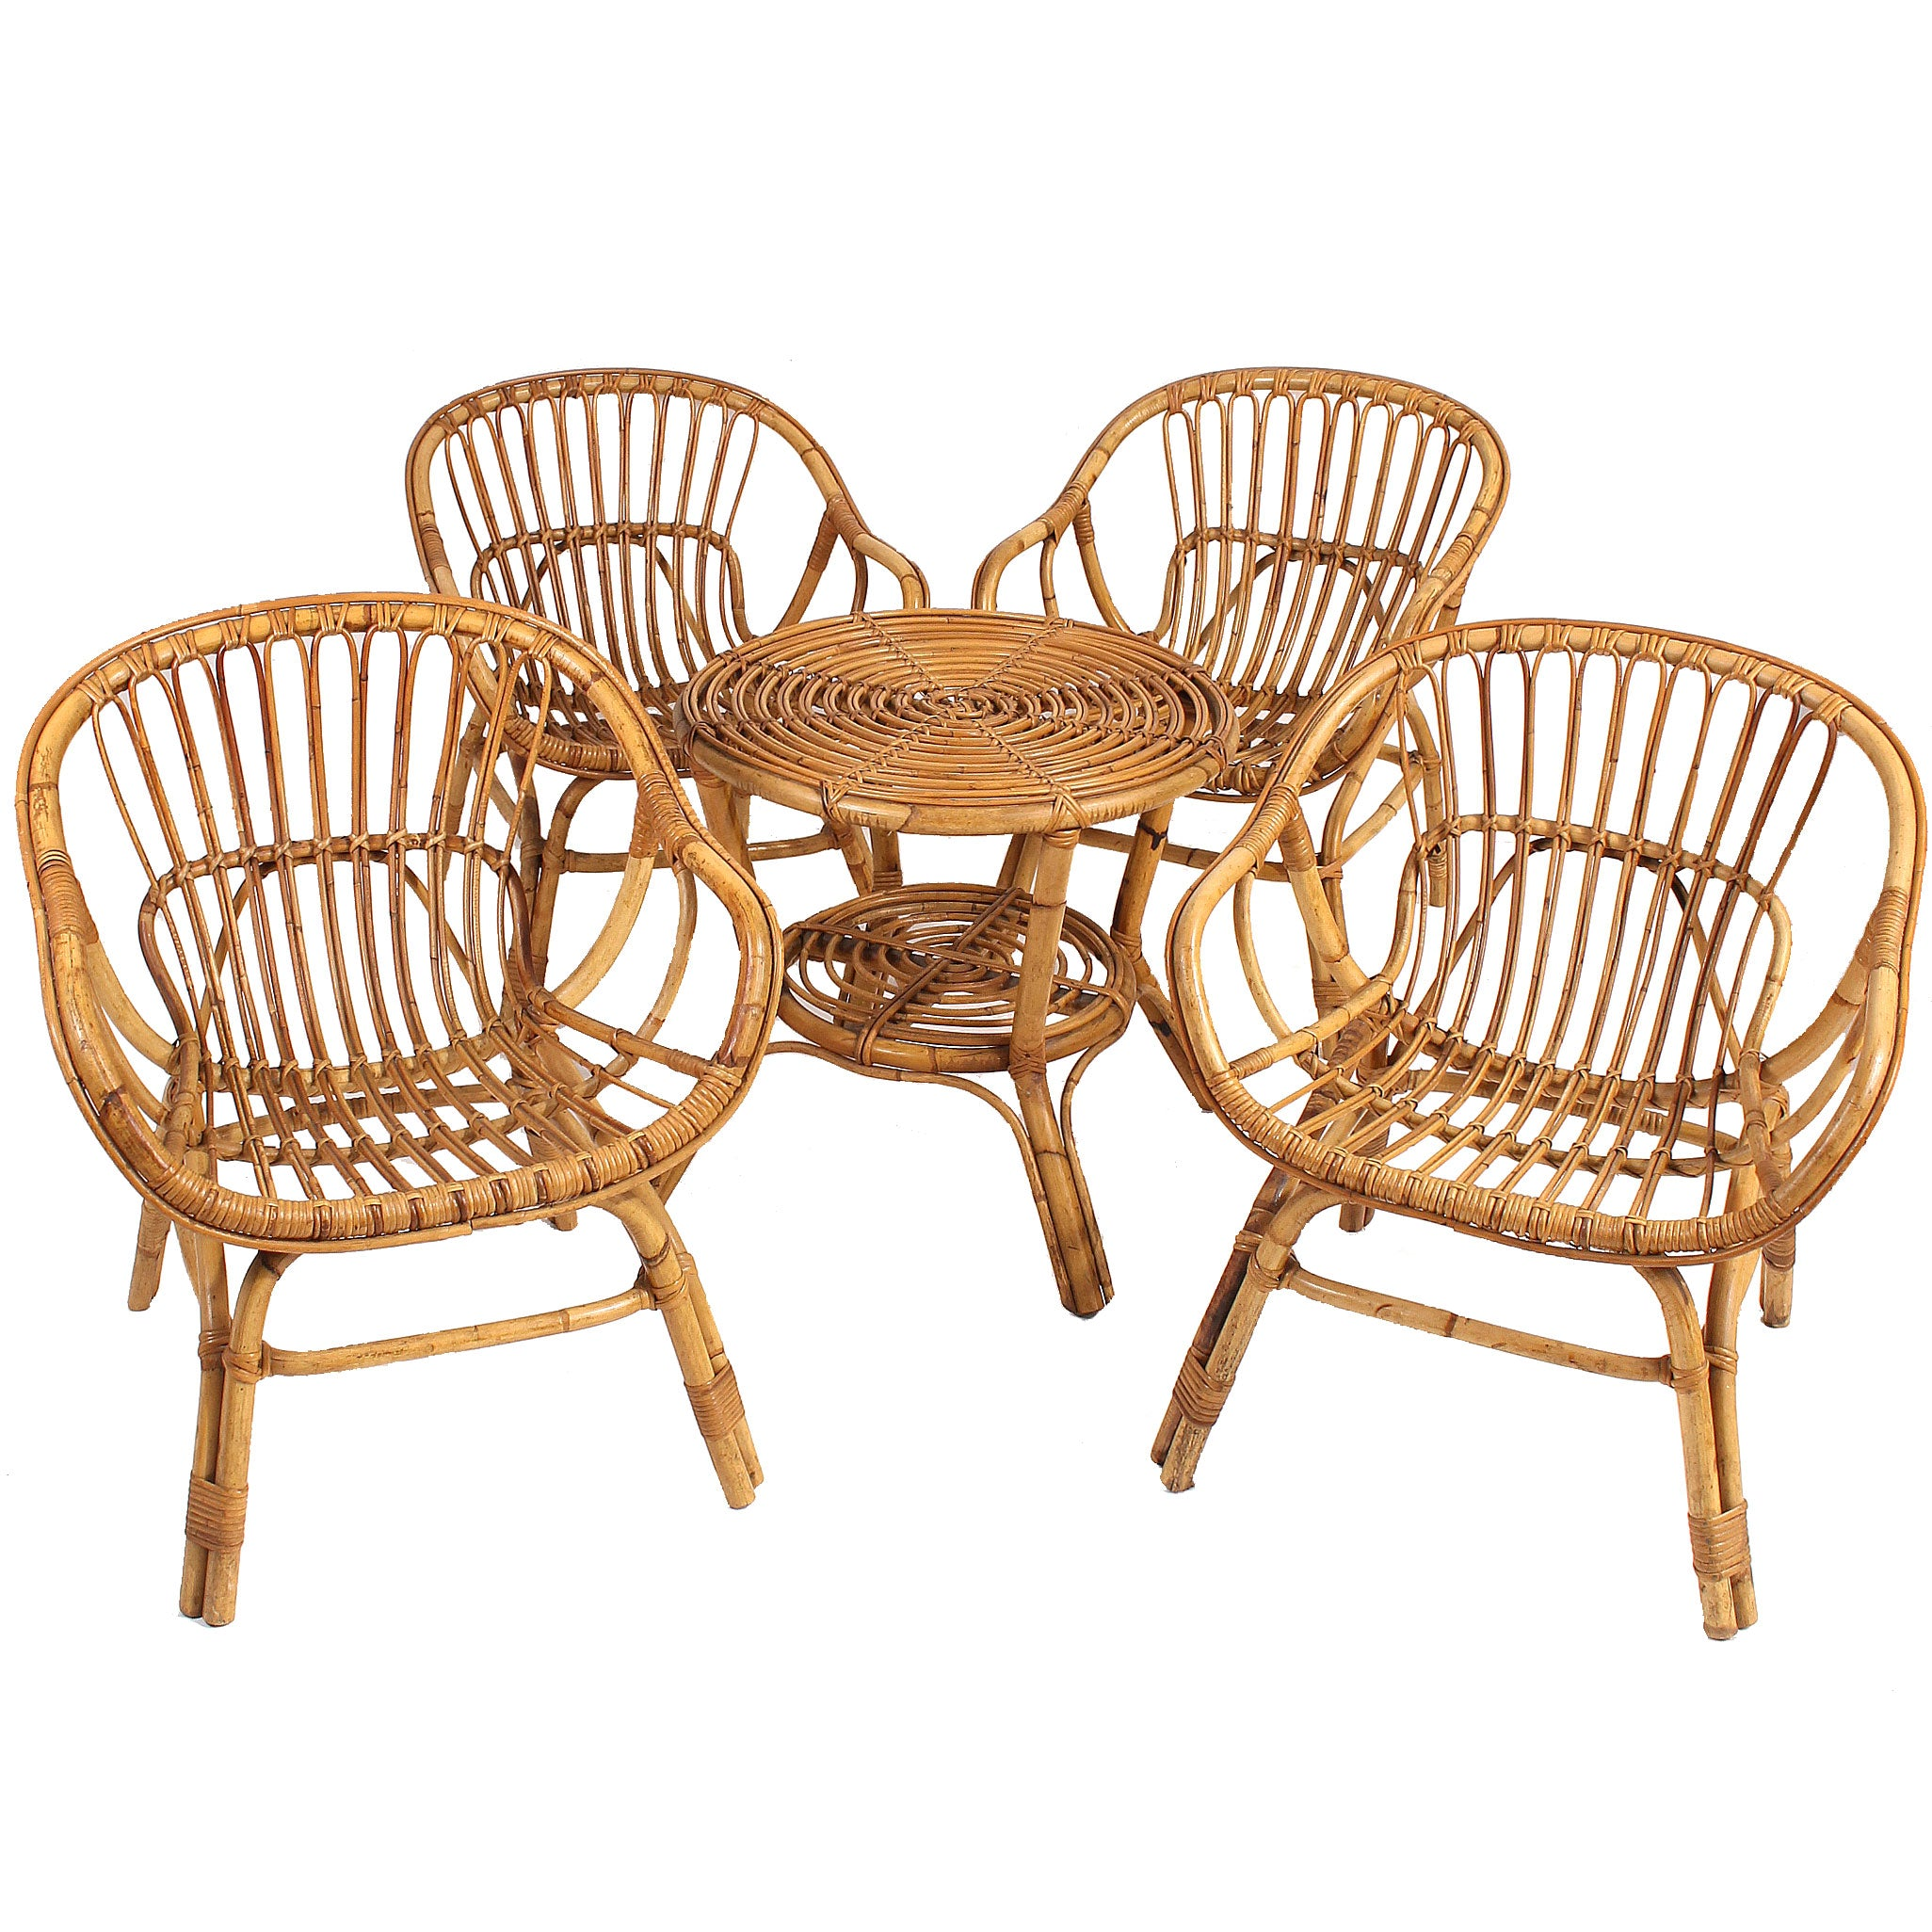 Outstanding Vintage Italian Rattan Lounge Chairs And Table Set Uwap Interior Chair Design Uwaporg